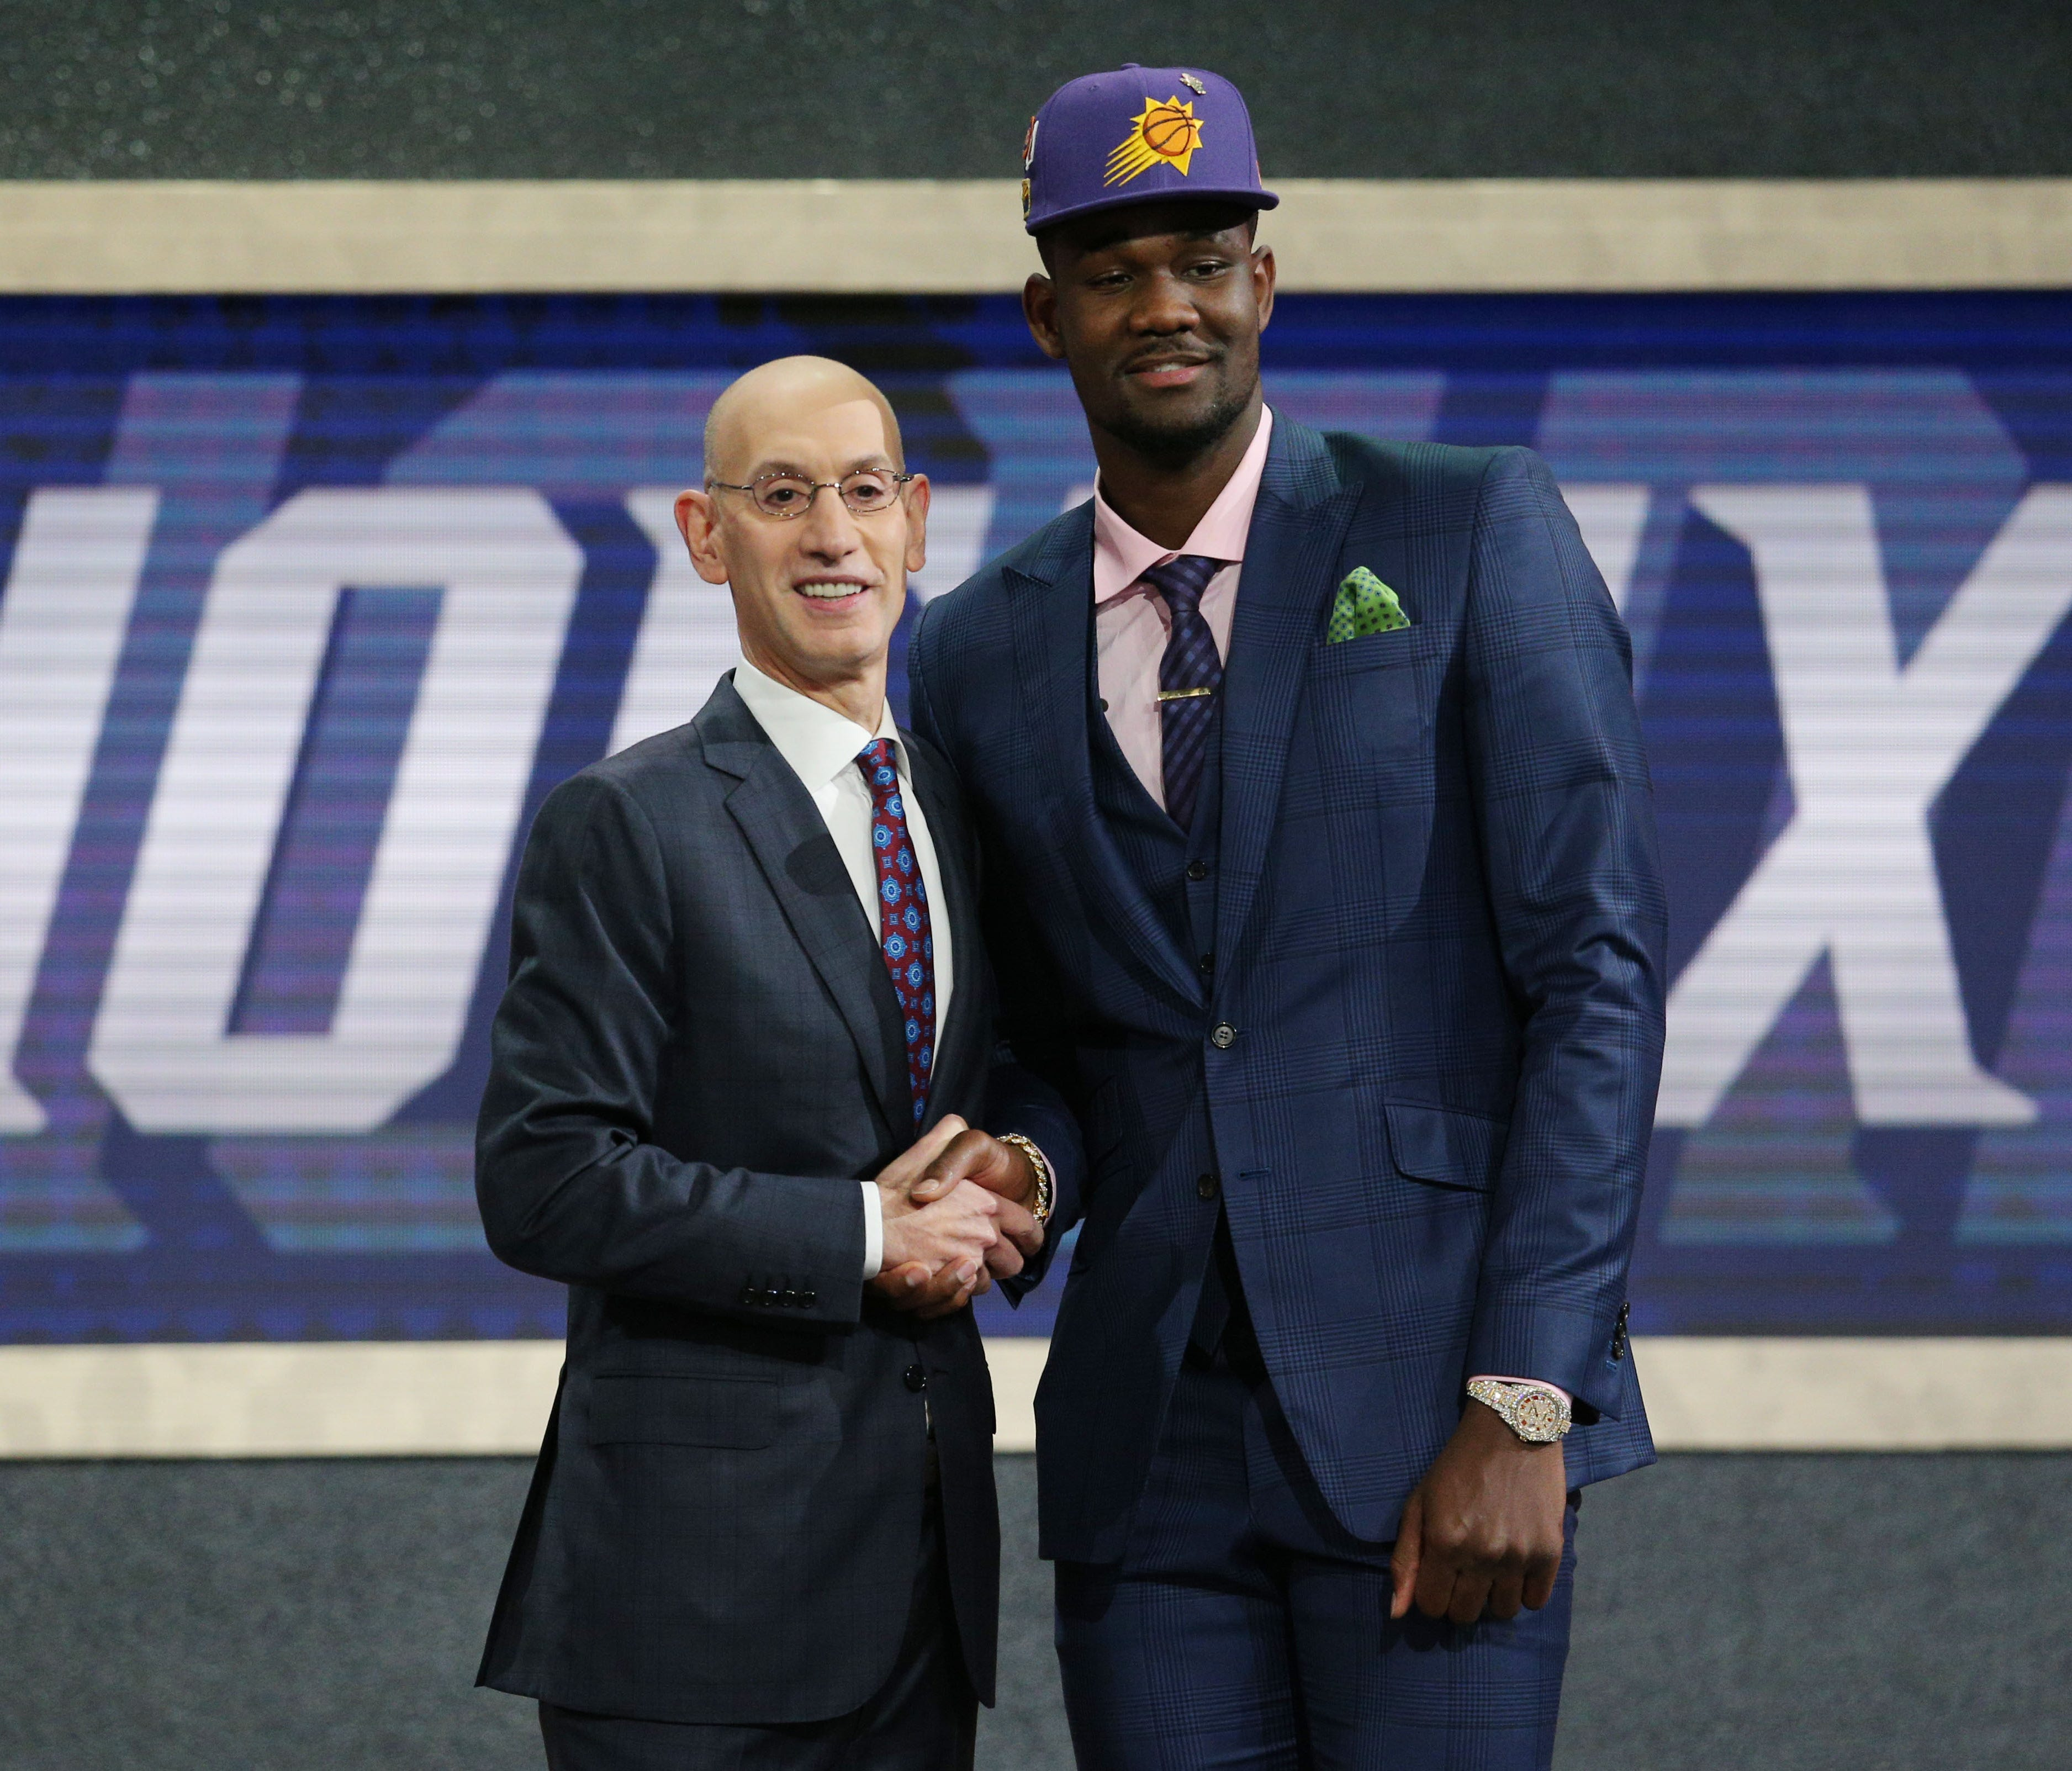 Deandre Ayton (Arizona) greets NBA Commissioner Adam Silver after being selected as the No. 1 pick in the 2018 NBA draft.